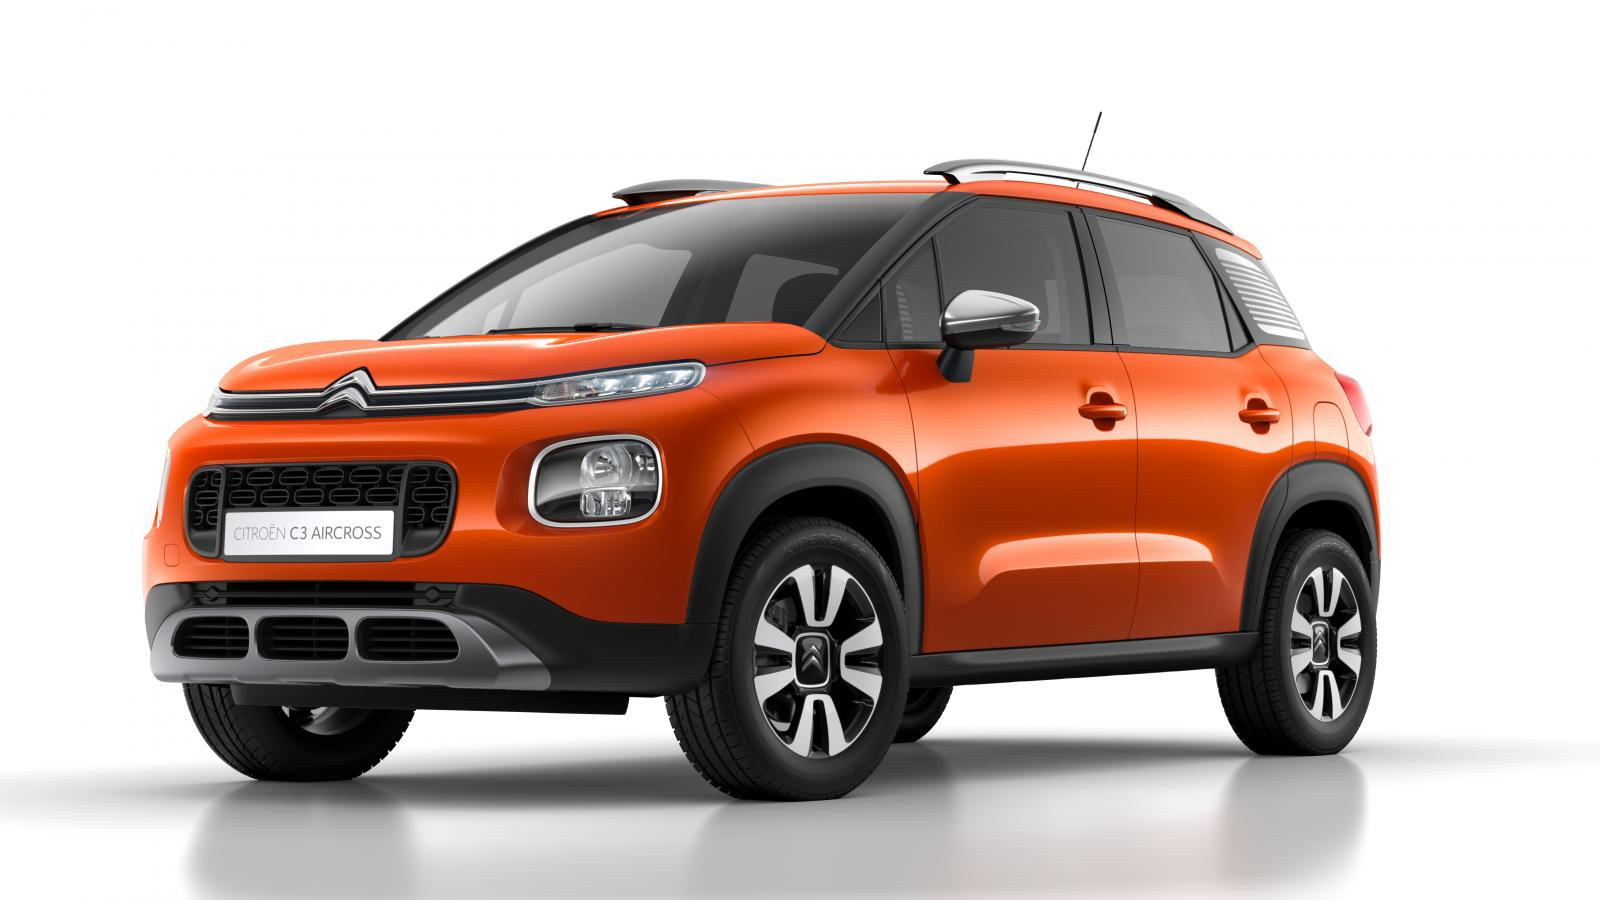 C3 Aircross Compact SUV - Spicy Orange